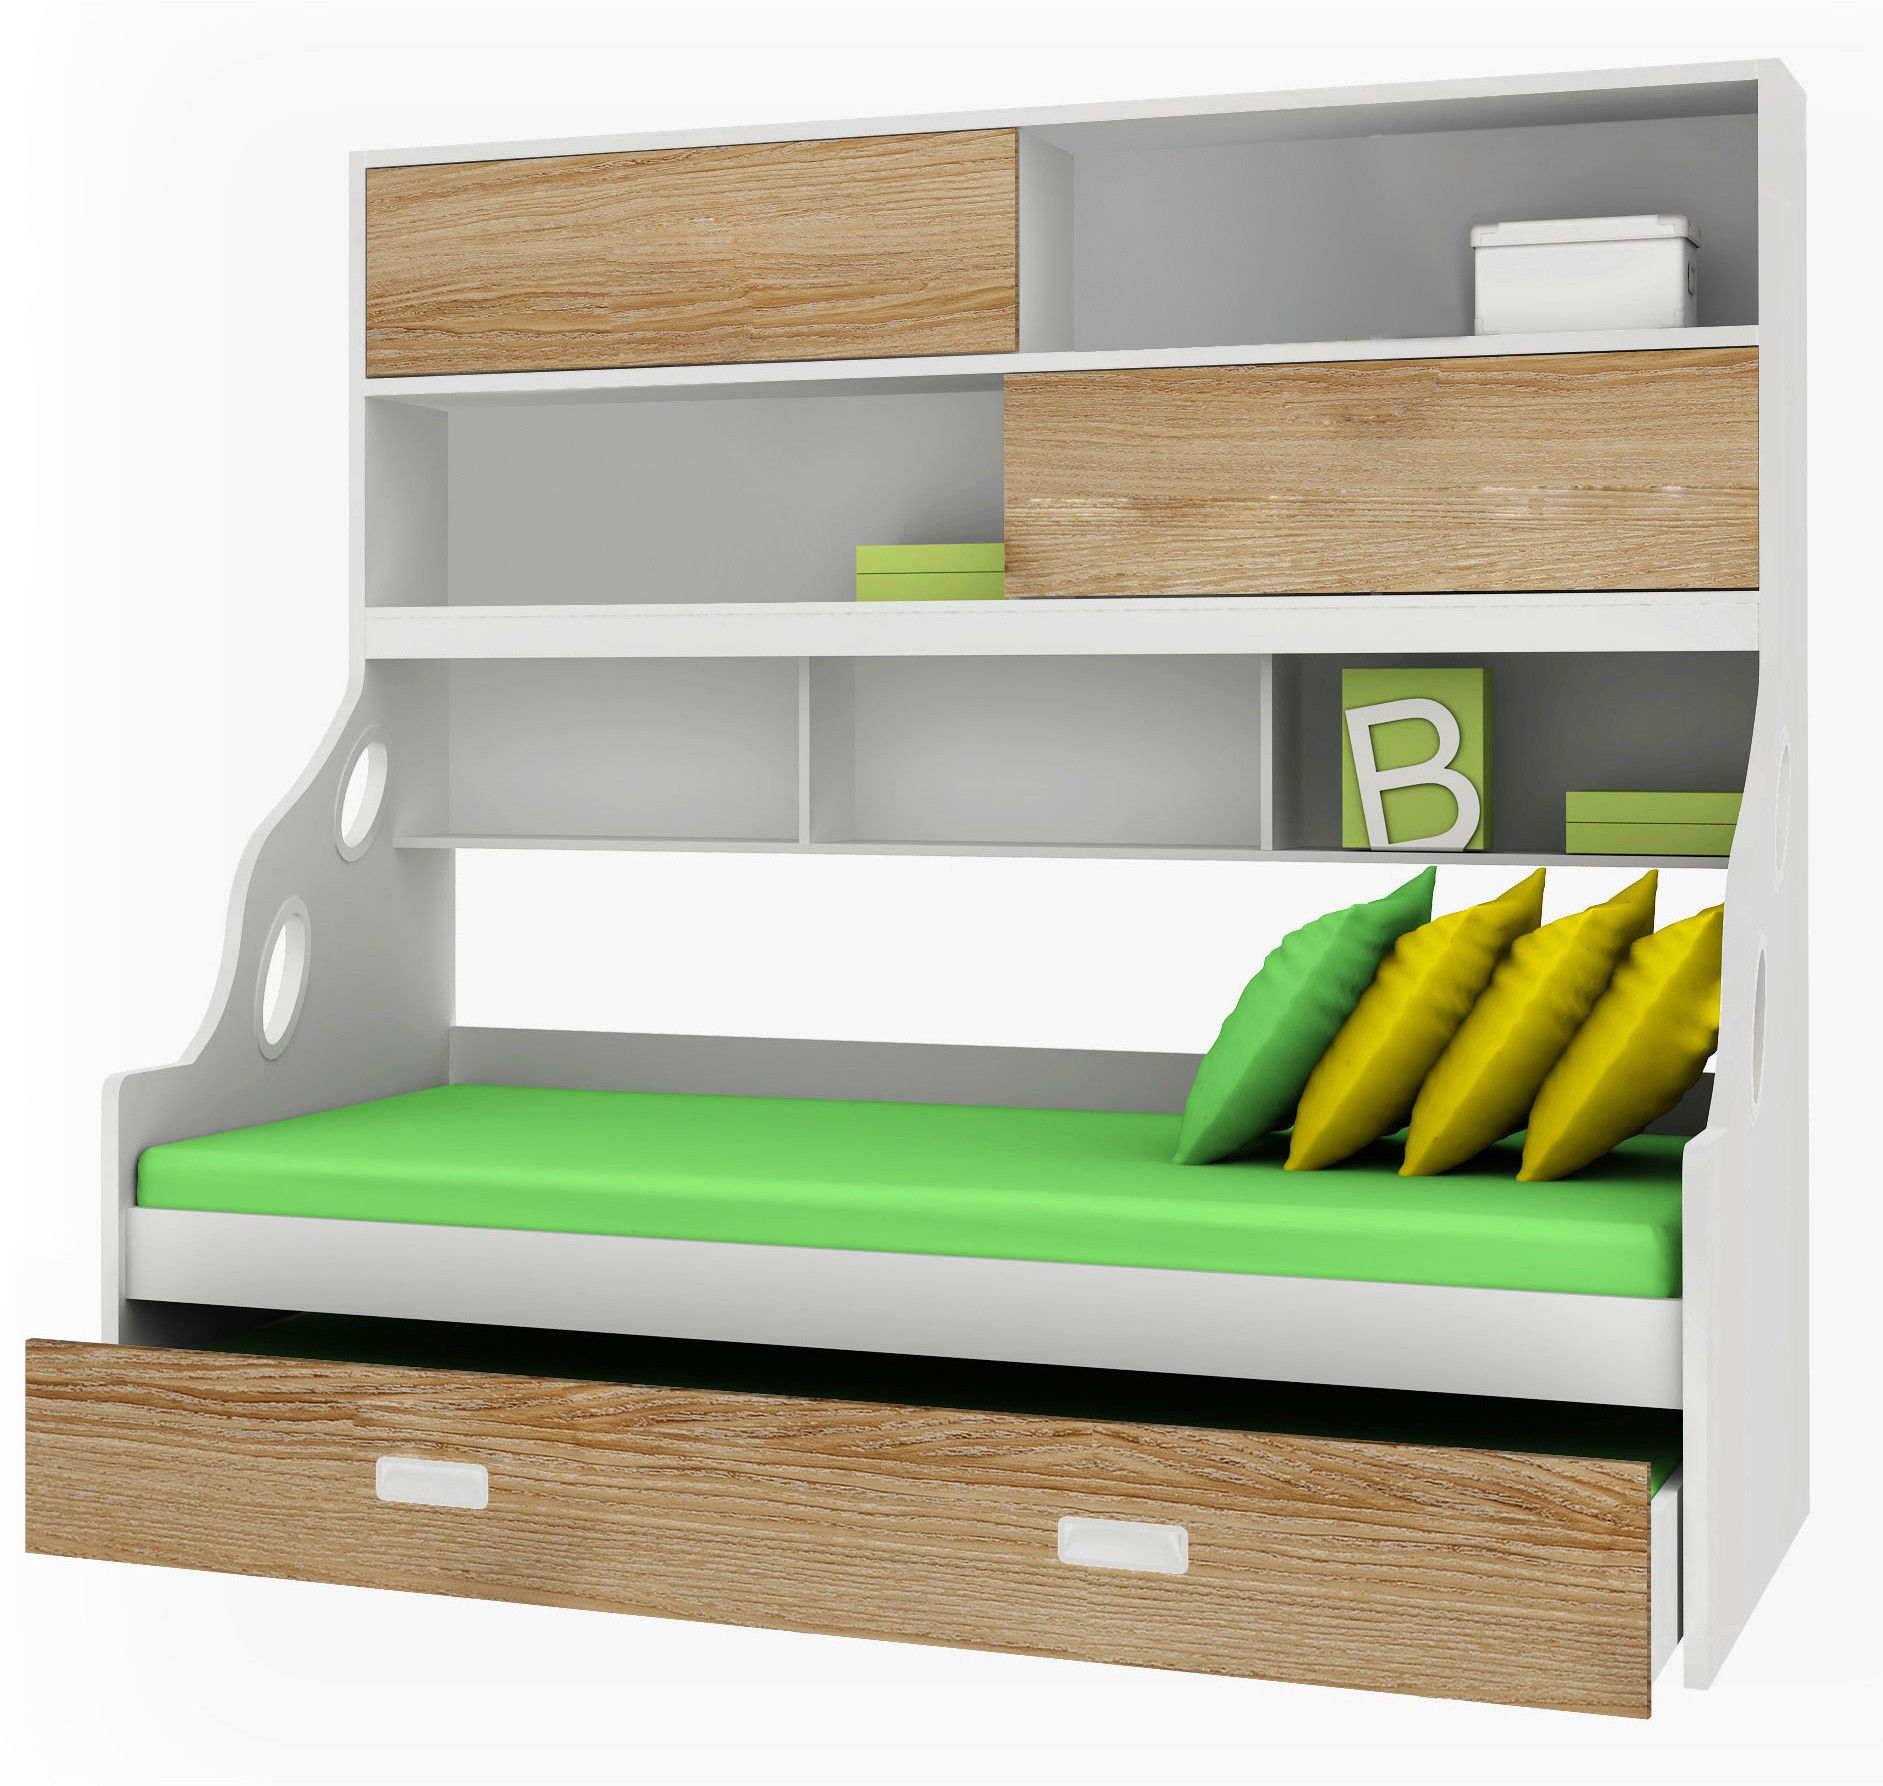 Alex Daisy Hybrid Engineered Wood Bunk Bed class=